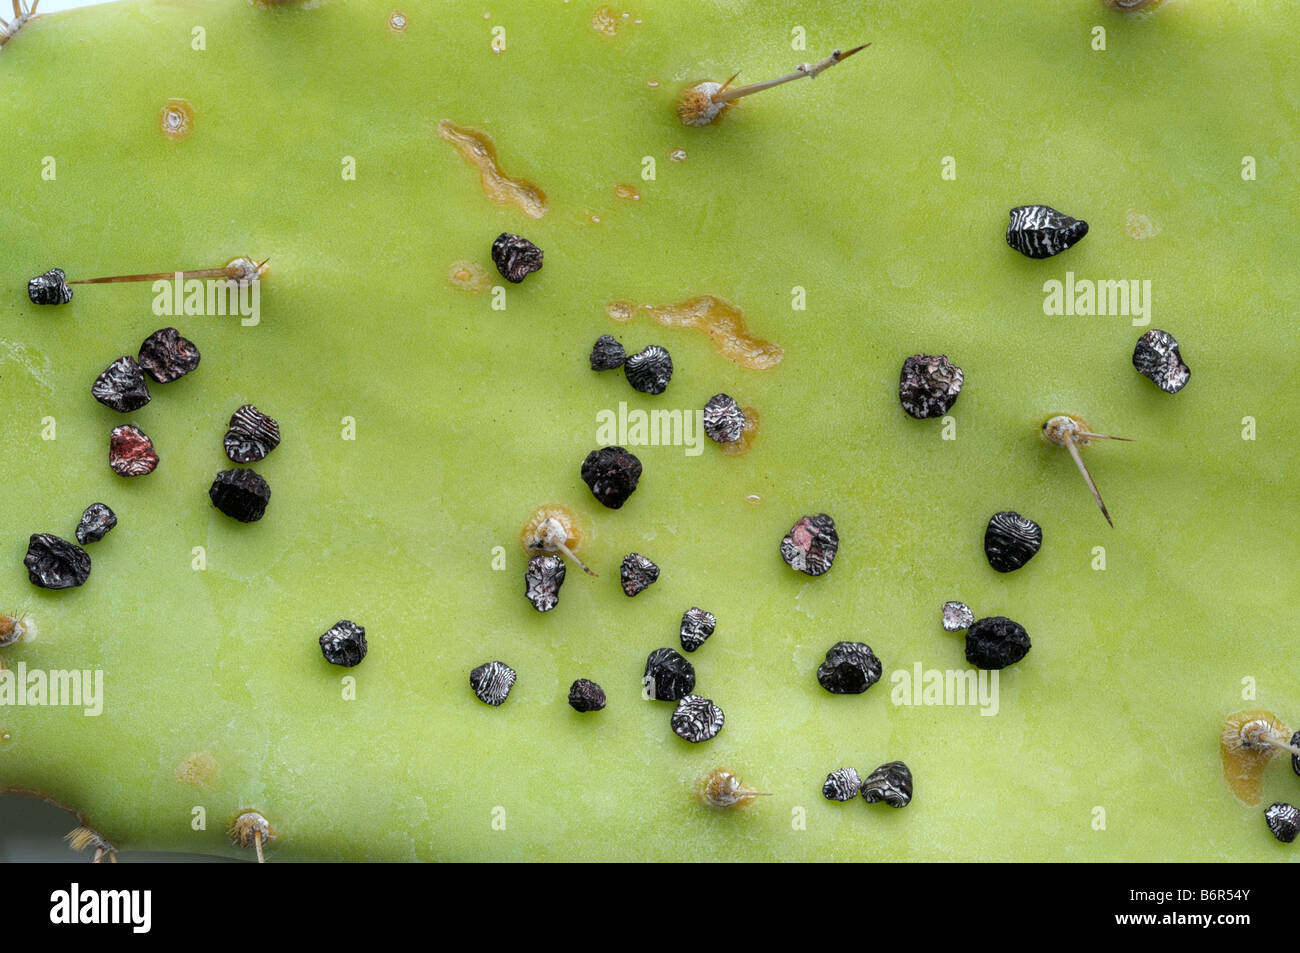 Cochineal insect (Dactylopius coccus). Dried females on cactus leaf for color production - Stock Image